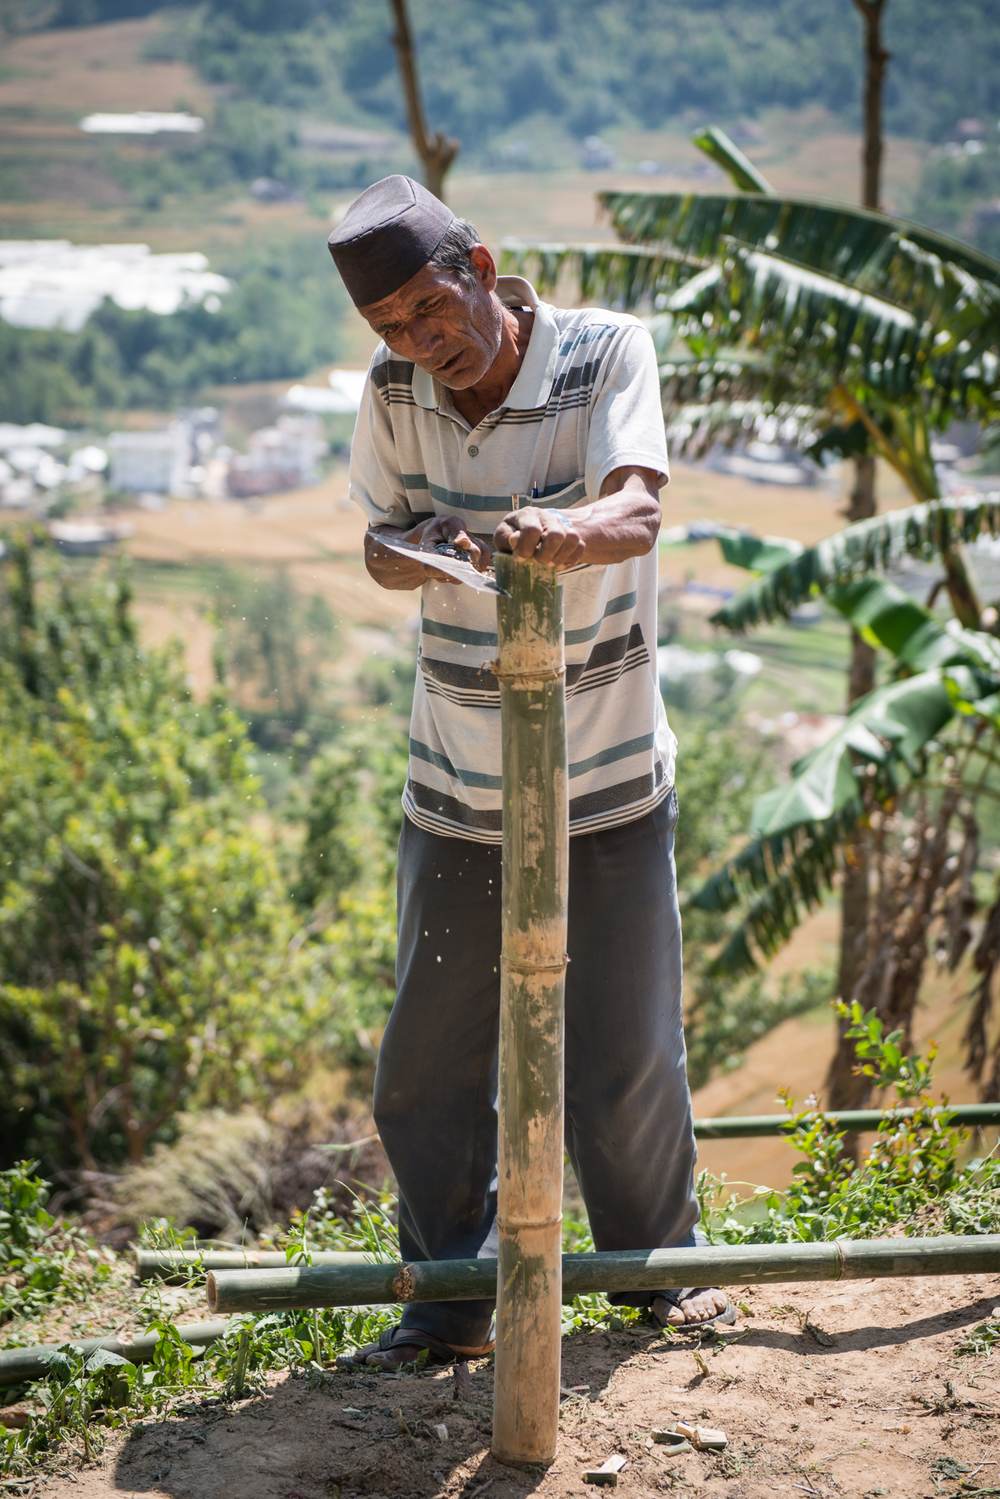 In Ramkot, we spent many days building bamboo shelters for families displaced by the earthquake. This nepalese elder taught us a thing or two about wiring and sawing bamboo.